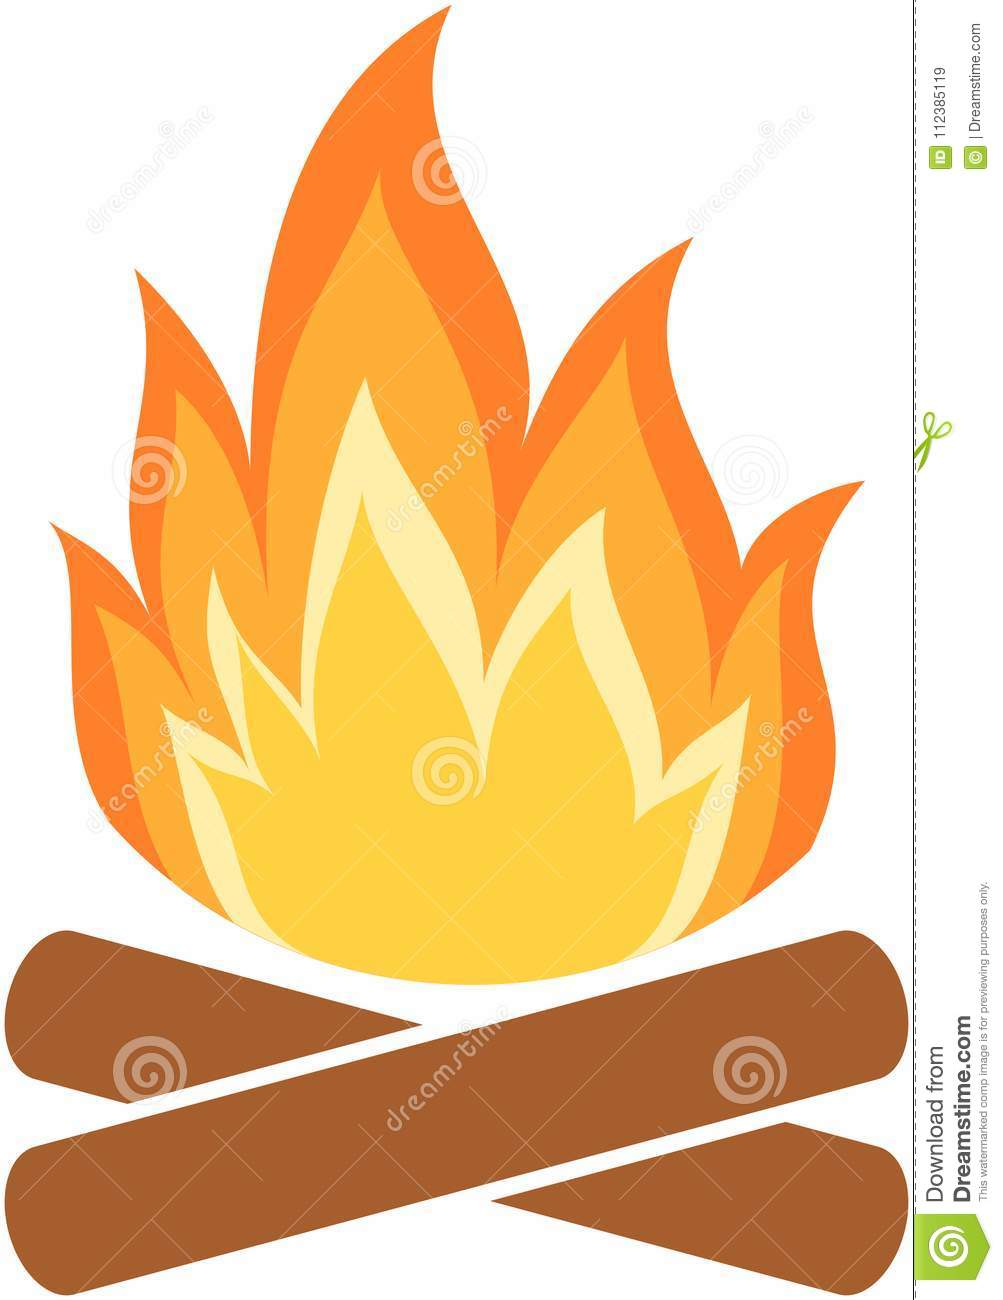 Camp fire icon. Flame.